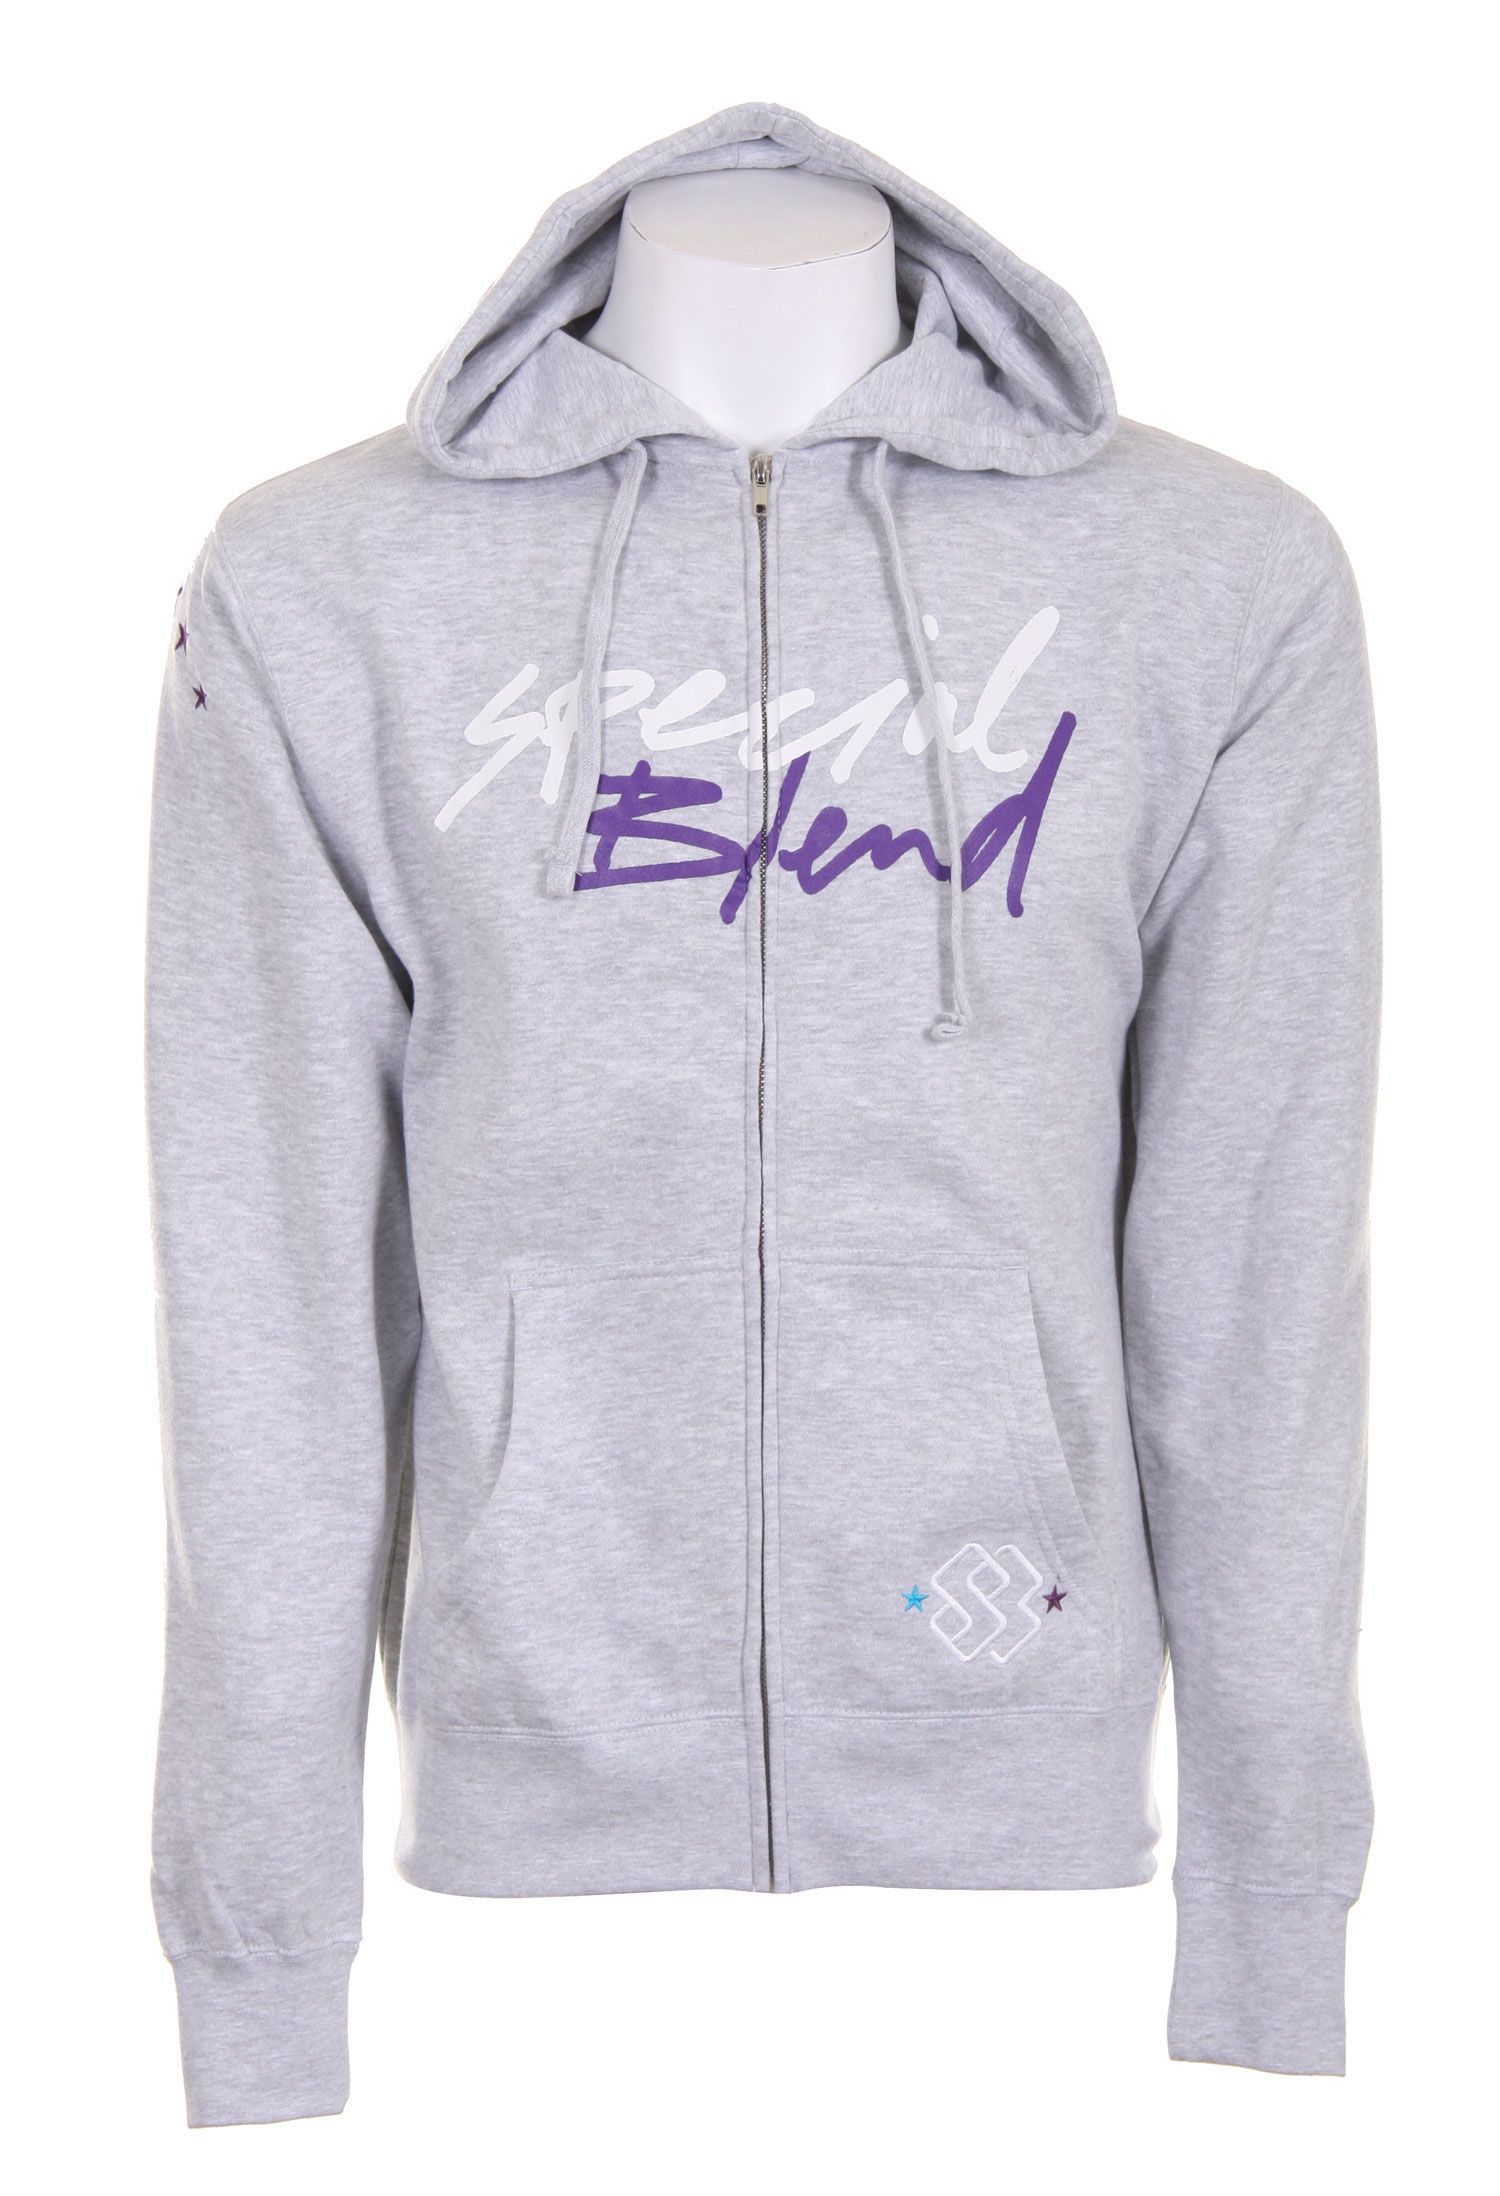 Skateboard The Special Blend Cursive Full Zip Hoodie is an overly comfortable hoodie that fits perfectly because of the stylish cut. The brand name Special Blend across the chest in two toned cursive and simple embroidery on the hand pocket and one of the sleeves keep this hoodie from being too plain, yet it is simple enough to not look obnoxious. This sweatshirt is great for a day in the snow or hanging out at the skate park.Key Features of The Special Blend Cursive Full Zip Hoodie: 80% Cotton / 20% Polyester, 210gm Slim Fit Chest Screen Print Embroidery On Hand Pocket and Sleeve - $24.95